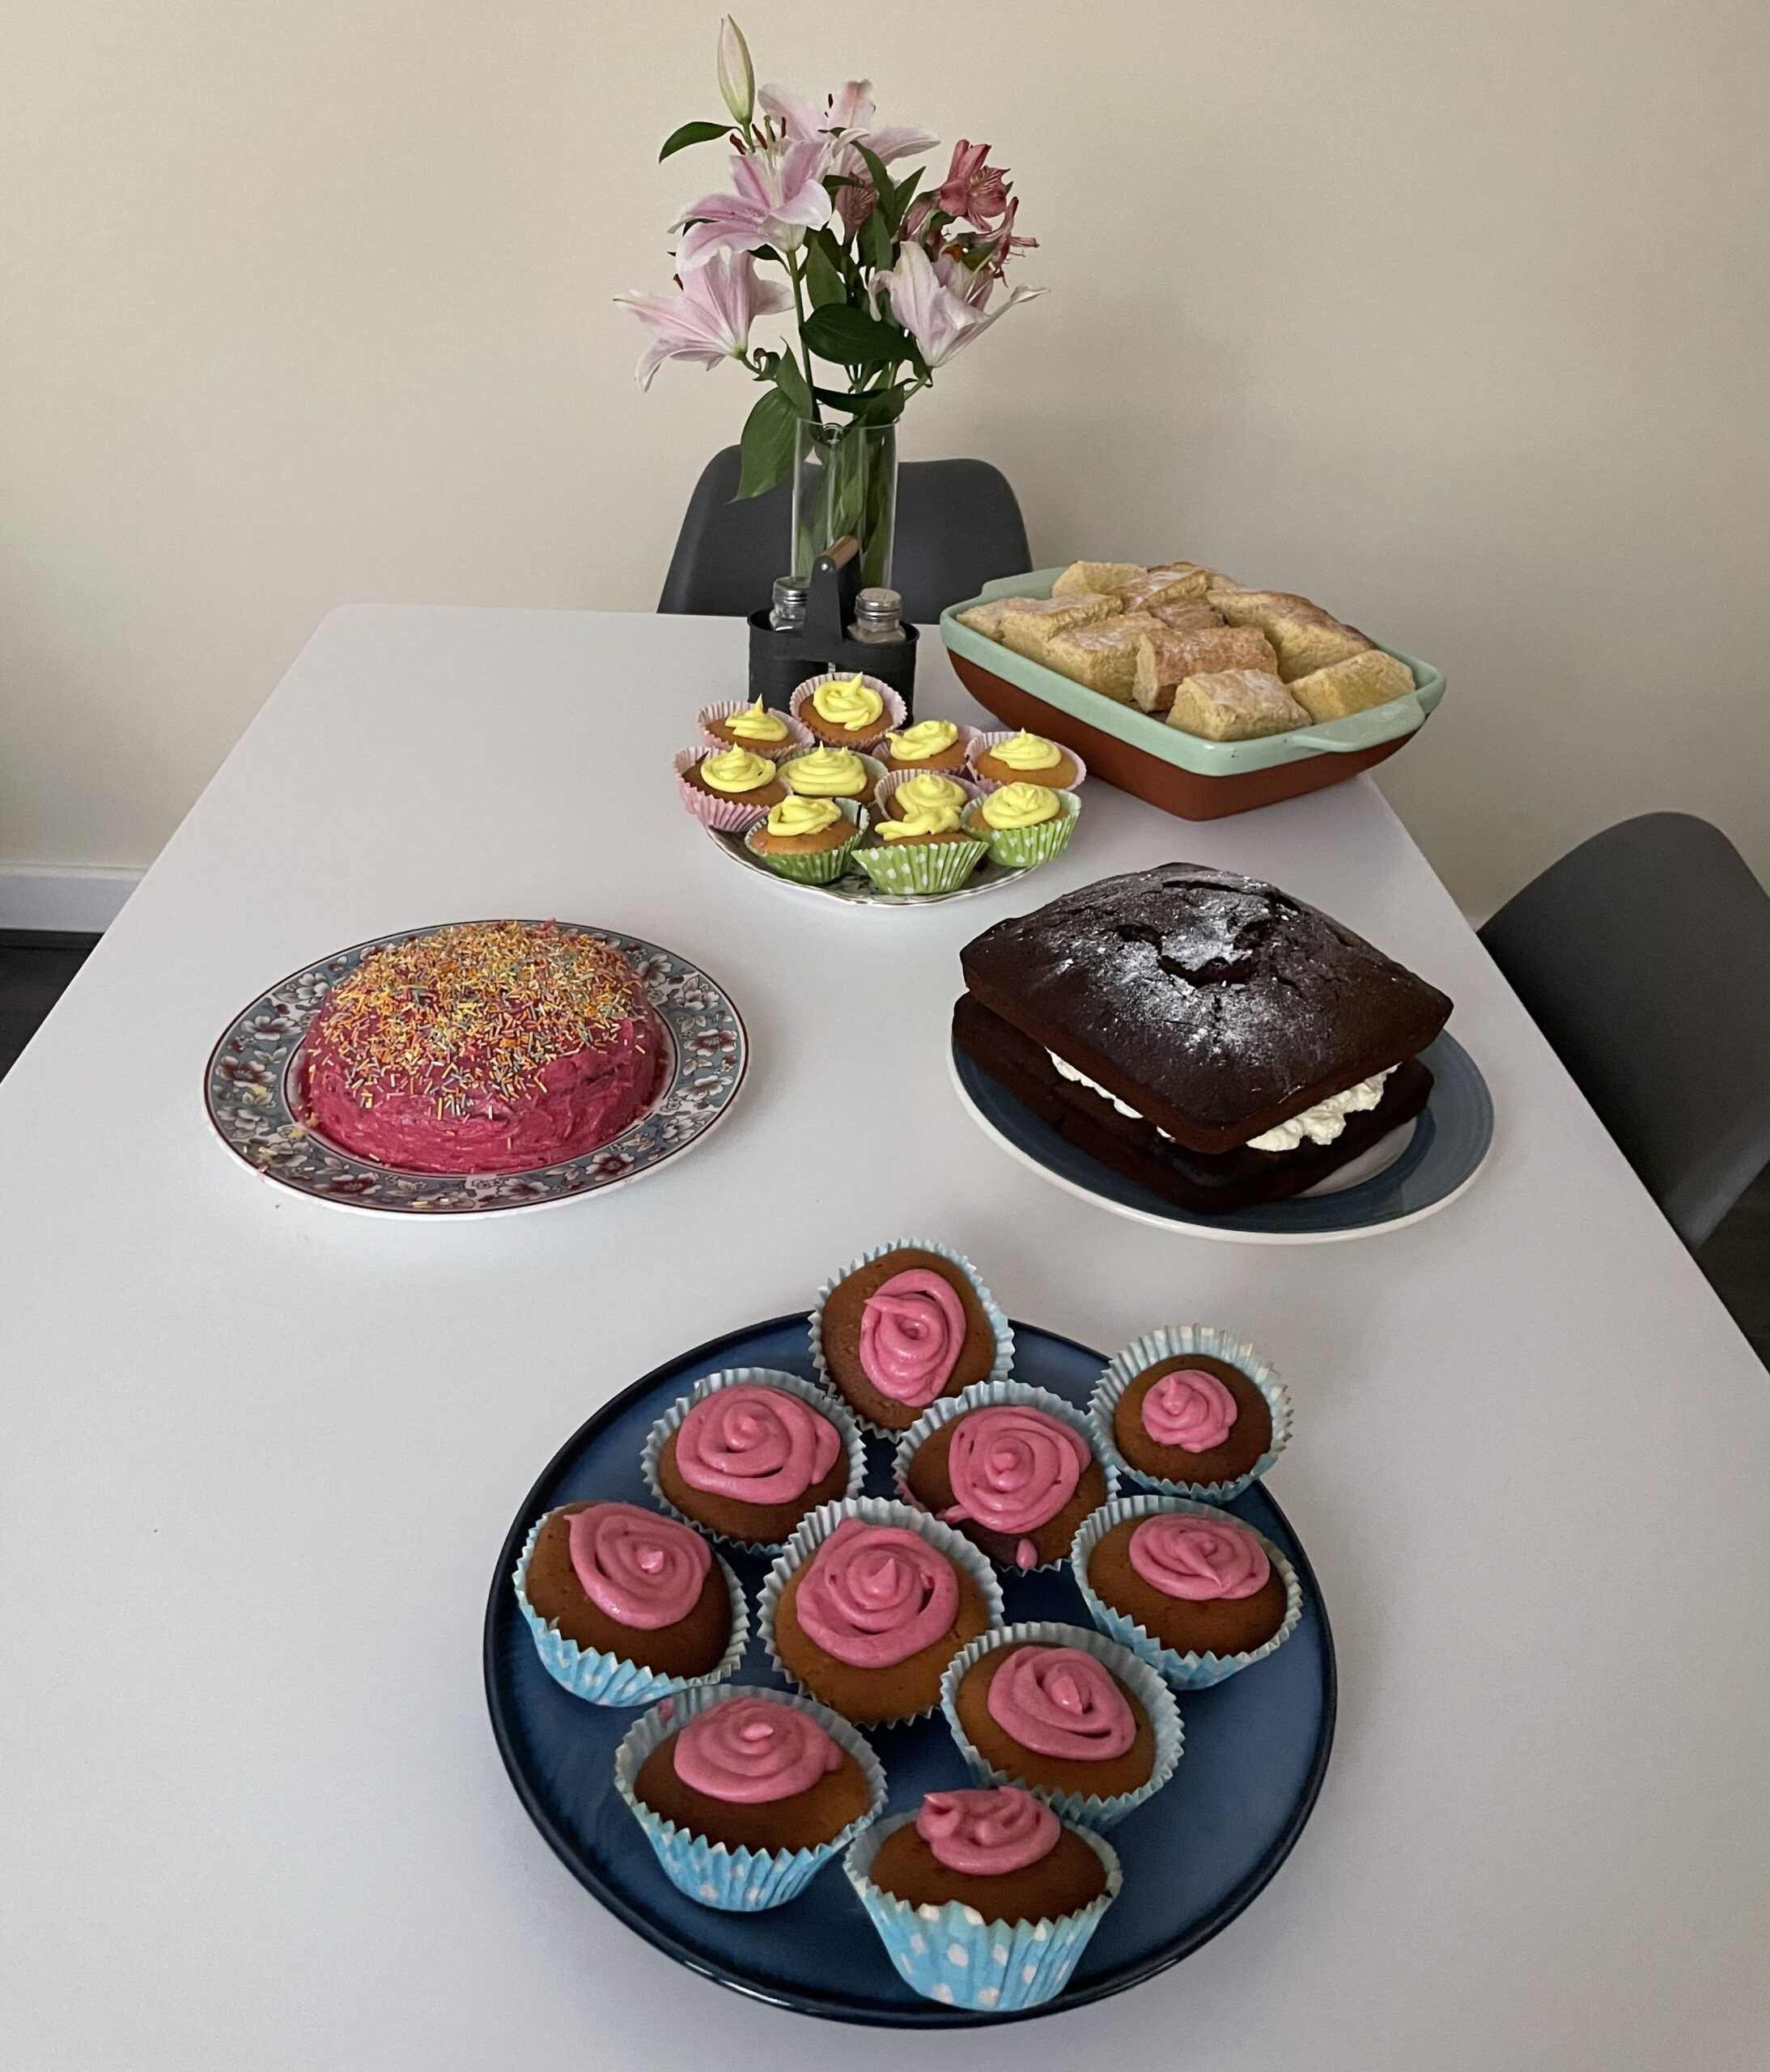 Cakes at New Start in Southport